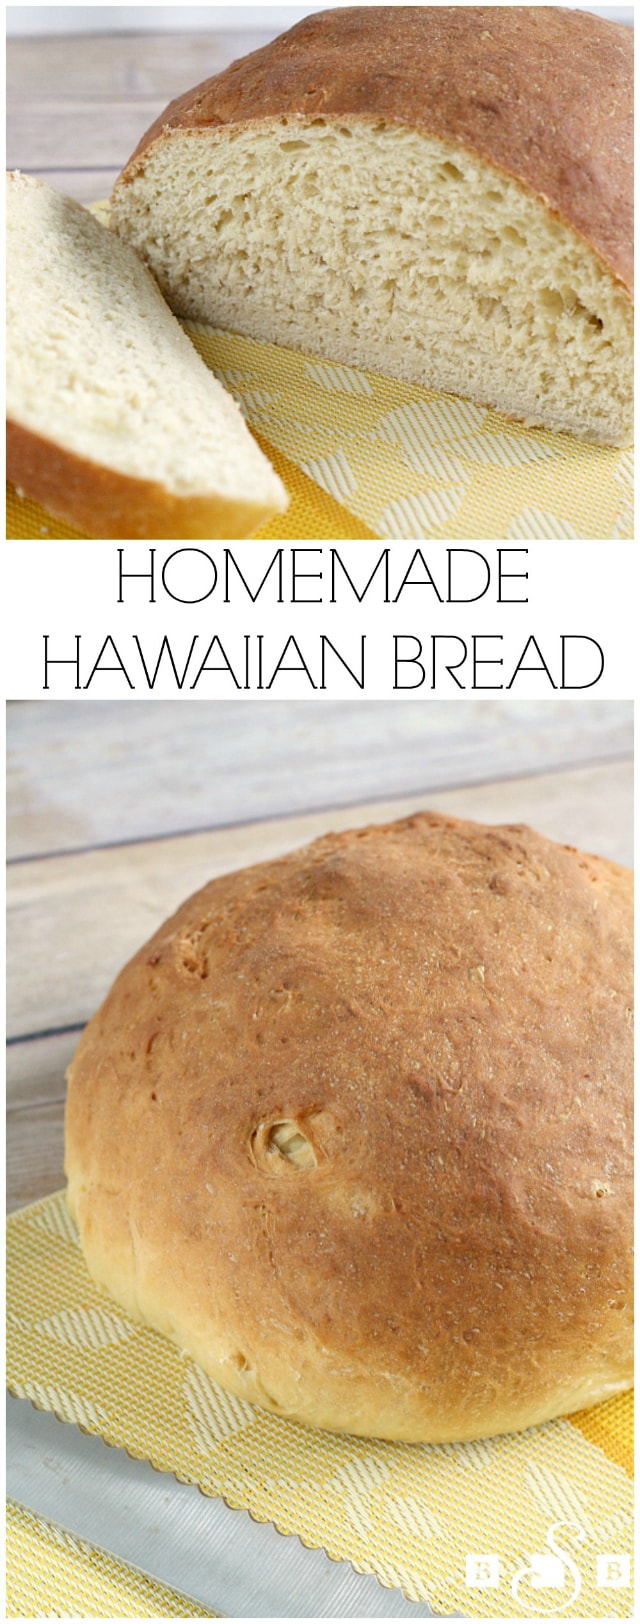 Hawaiian Bread made fresh with pineapple juice, ginger and a few other basic ingredients. Simple Hawaiian Bread recipe that is soft, sweet, delicious and easy to make too!